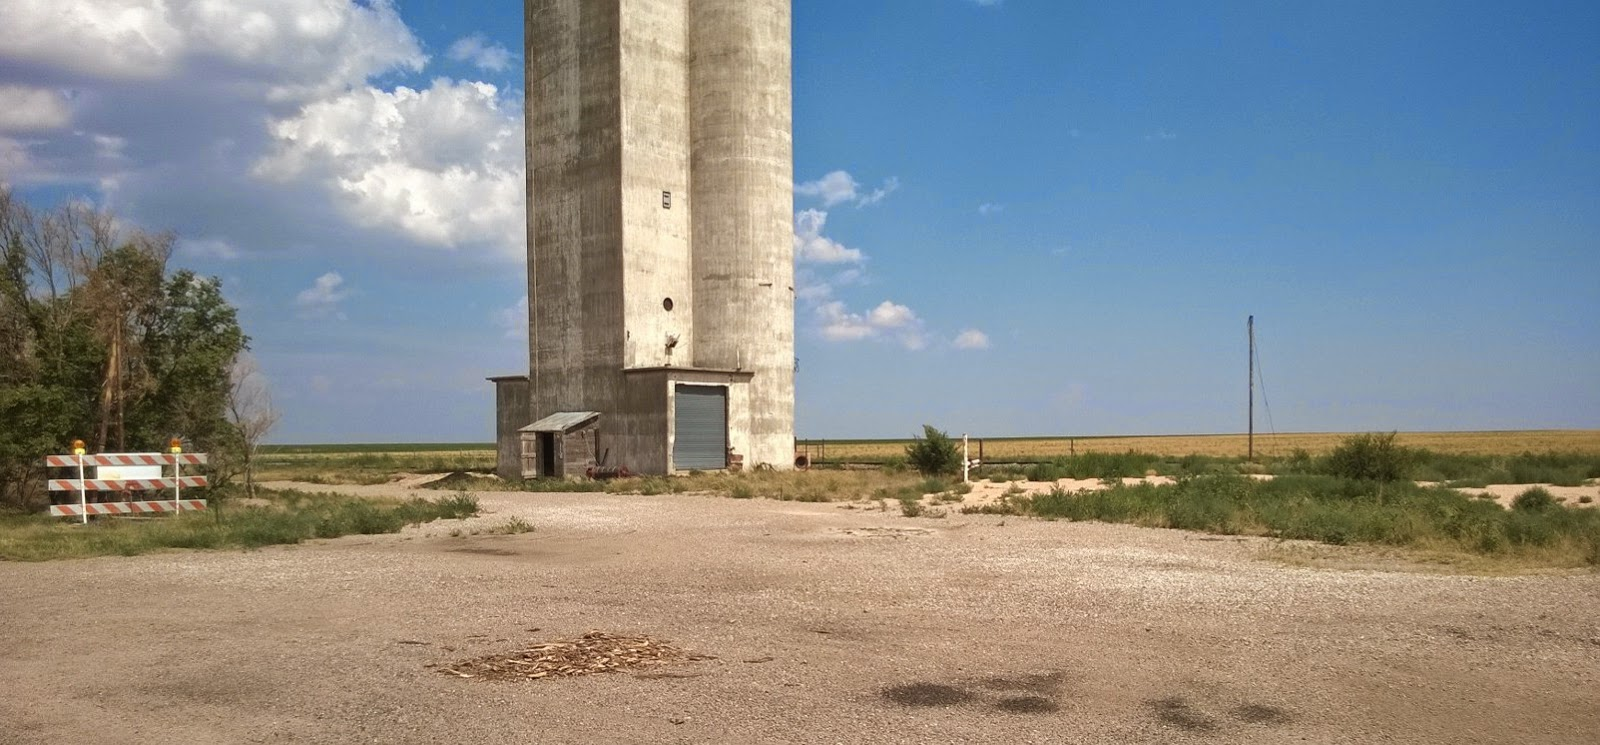 Kansas stanton county manter - To Read The Full Story On Saunders Click Here